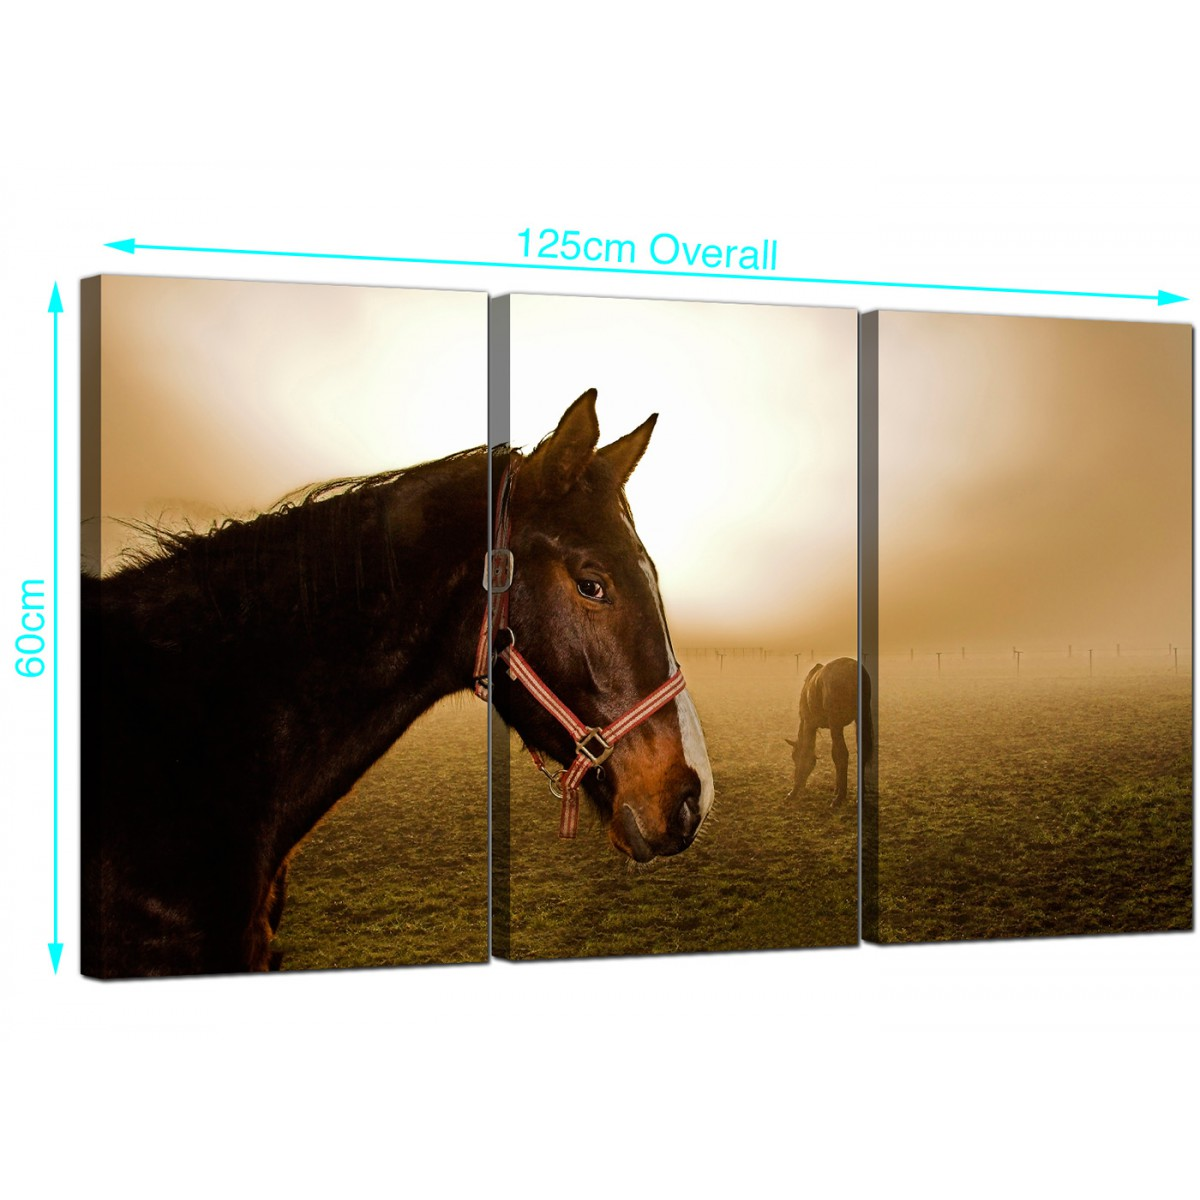 large canvas art for living room how to arrange furniture in a long narrow with corner fireplace horses 3 panel your